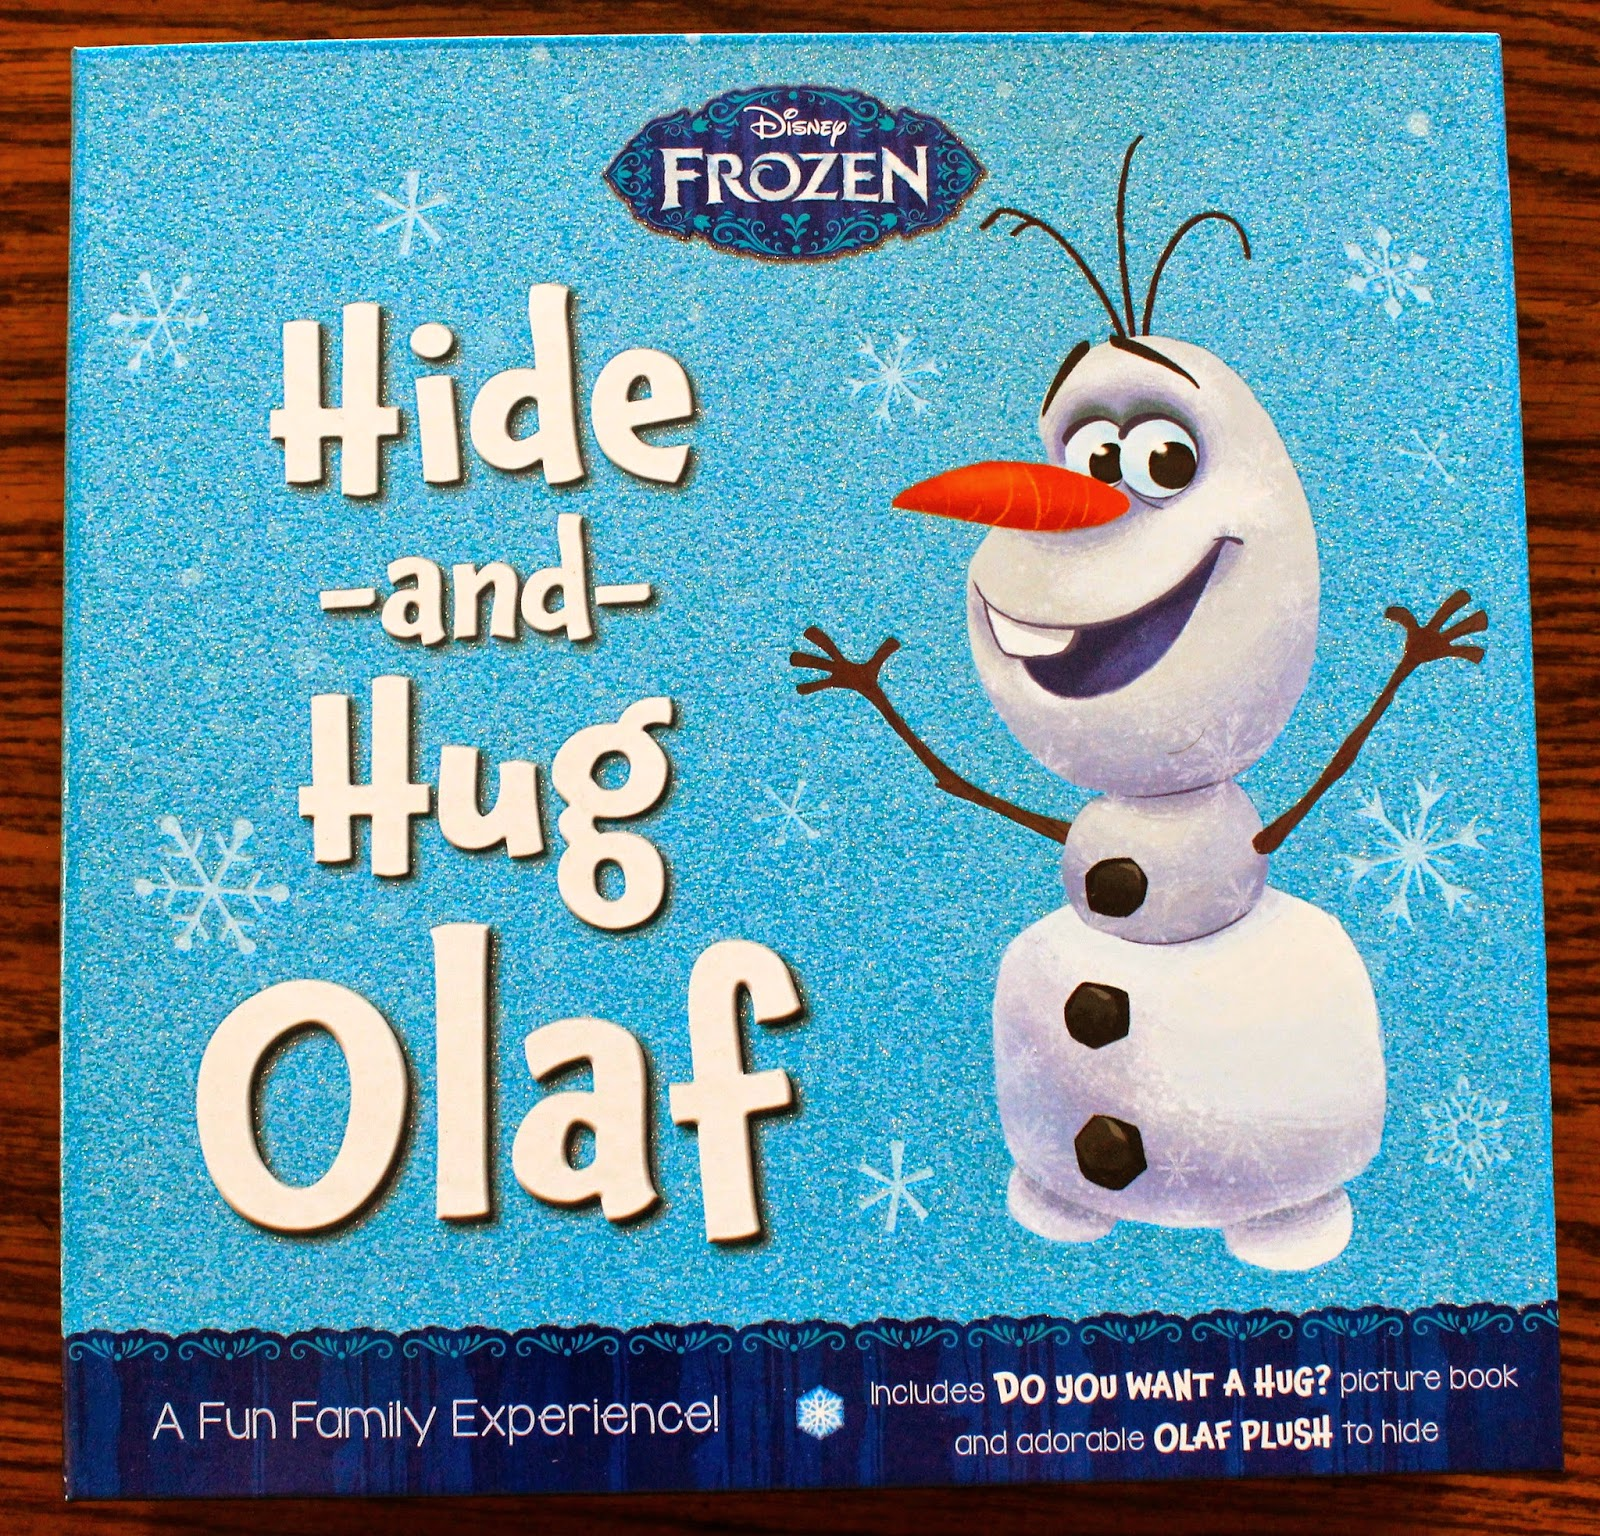 http://www.amazon.com/Disneys-Frozen-Hide-Olaf-Plush/dp/B00P1OXLHO/ref=sr_1_2?ie=UTF8&qid=1417726884&sr=8-2&keywords=hide+and+hug+olaf